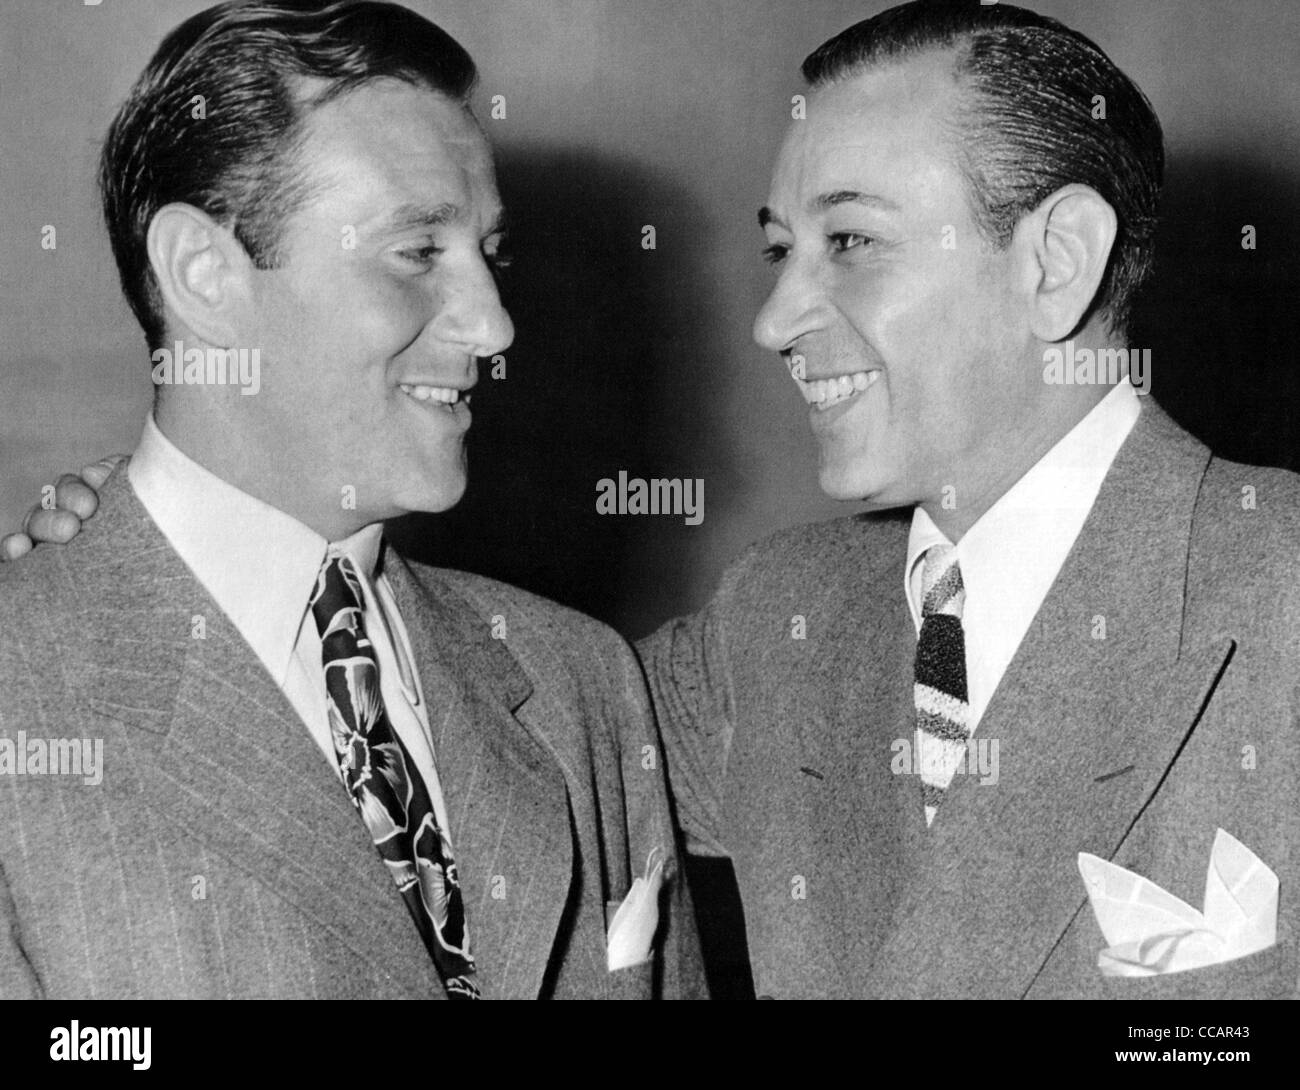 Image result for george raft and bugsy siegel